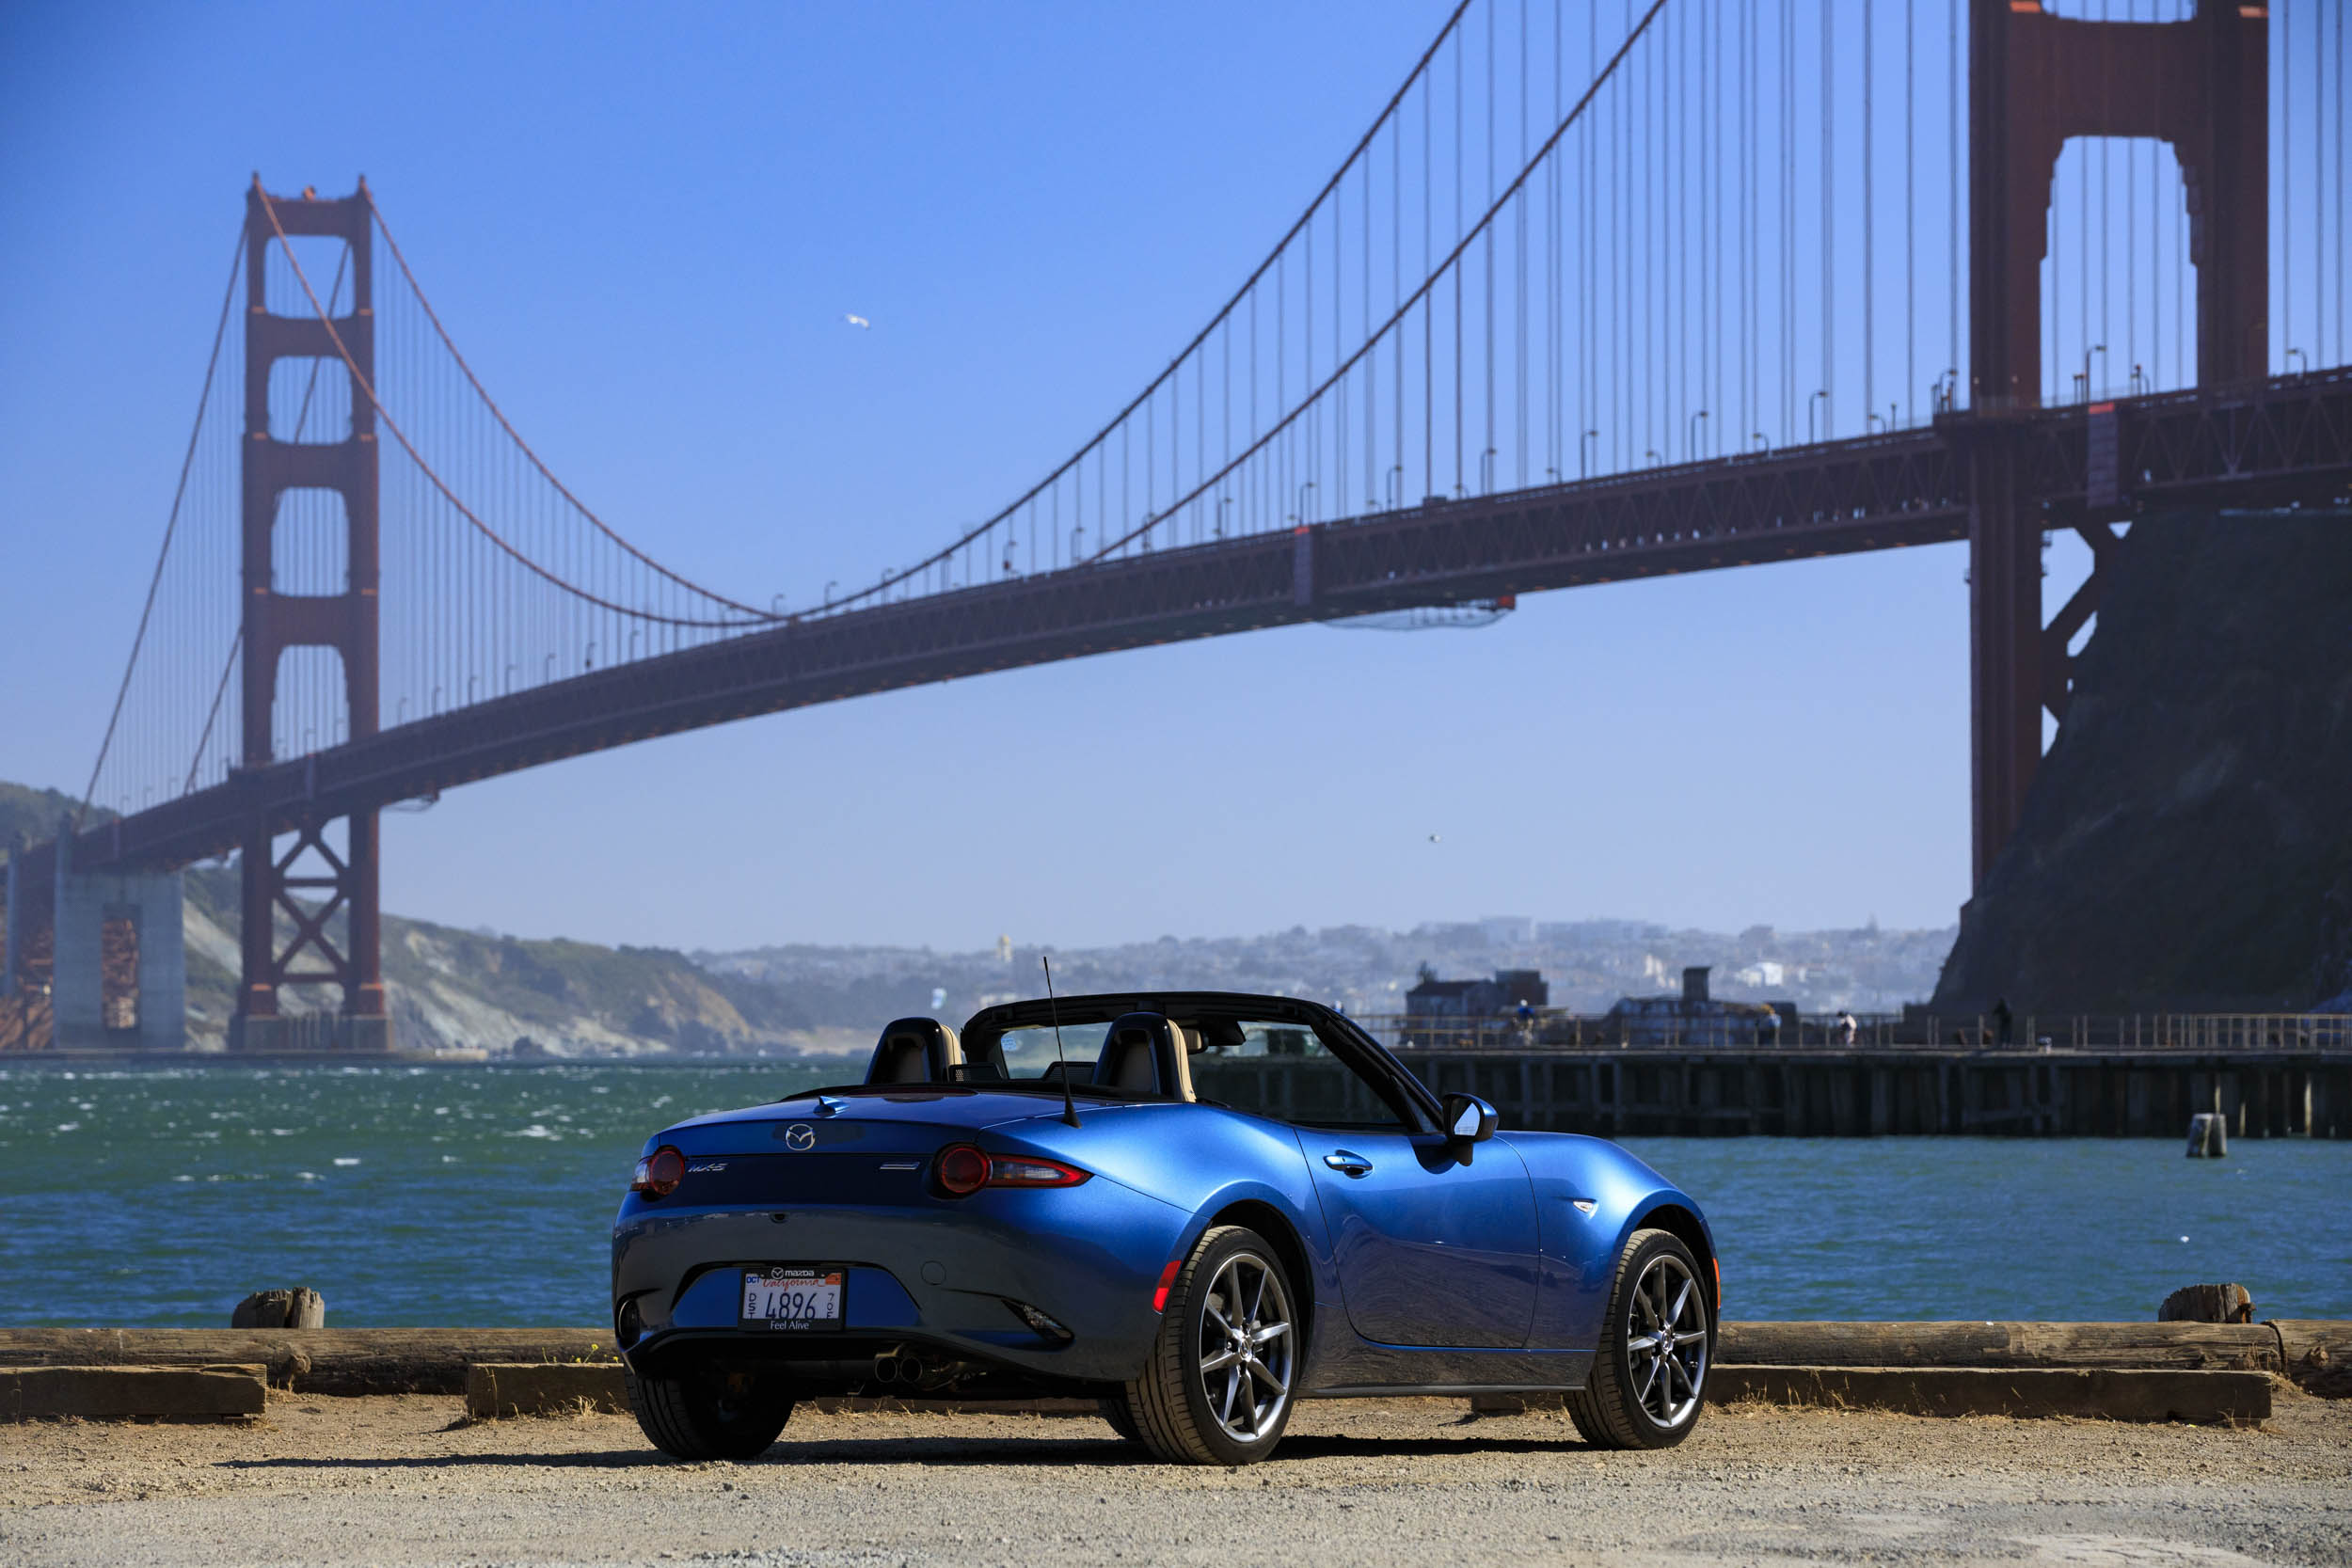 2019 Mazda MX-5 Miata Roadster rear 3/4 by the Golden Gate bridge